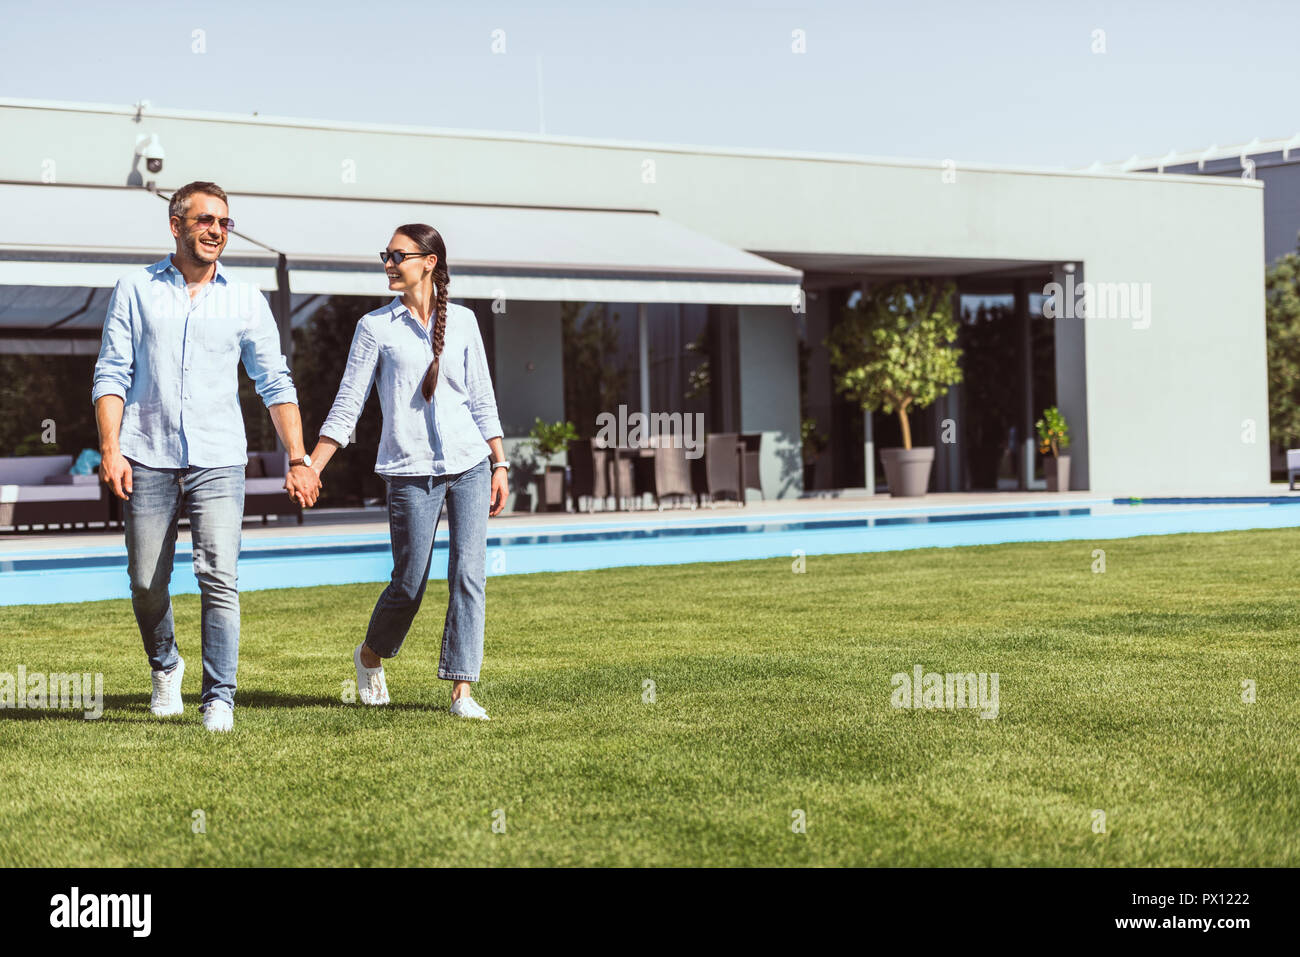 smiling couple holding hands and walking on green lawn near swimming pool at country house - Stock Image